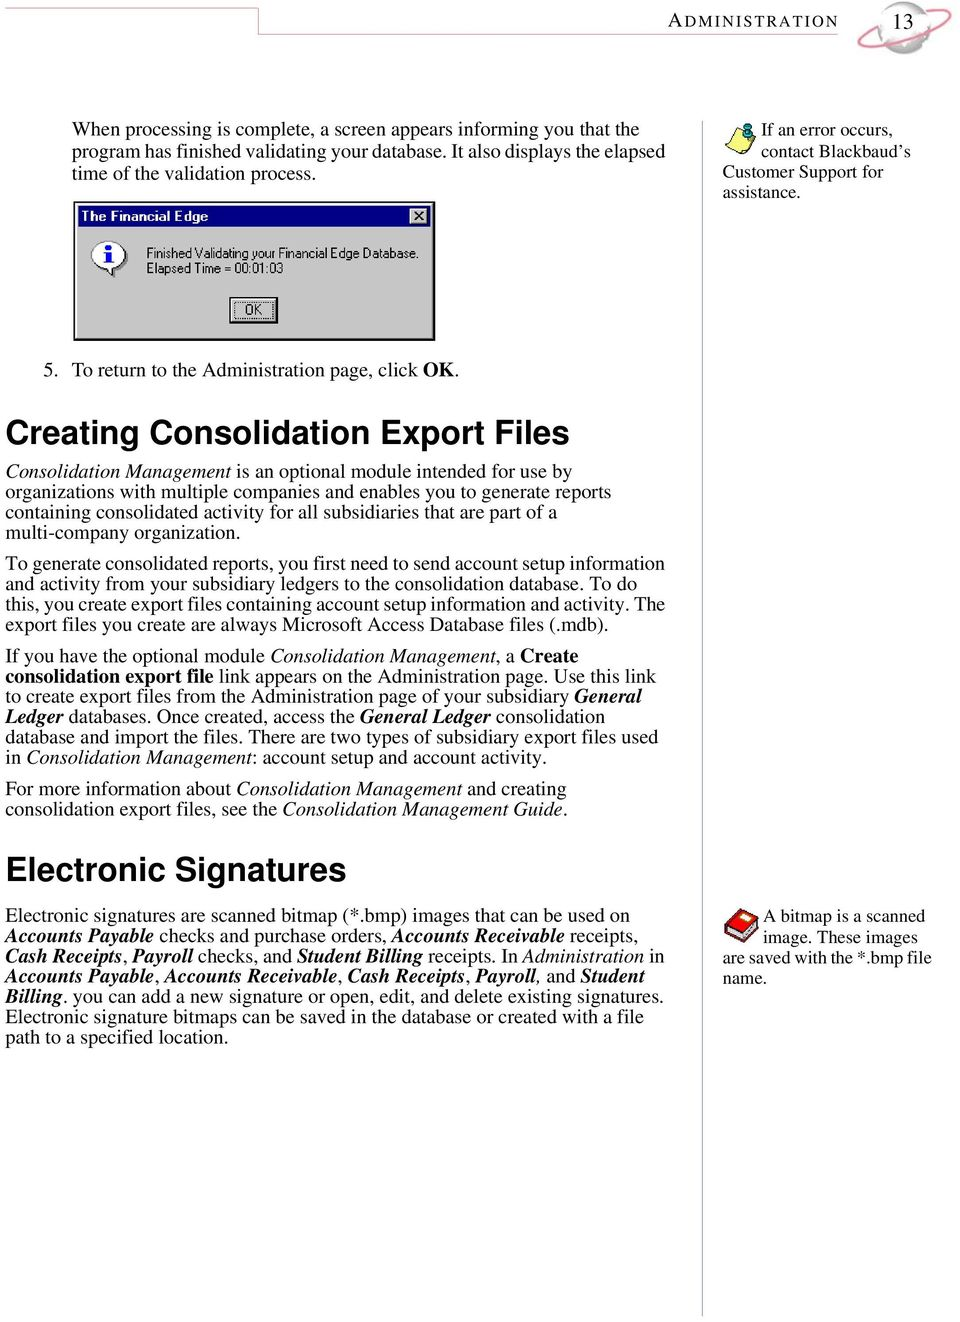 Creating Consolidation Export Files Consolidation Management is an optional module intended for use by organizations with multiple companies and enables you to generate reports containing